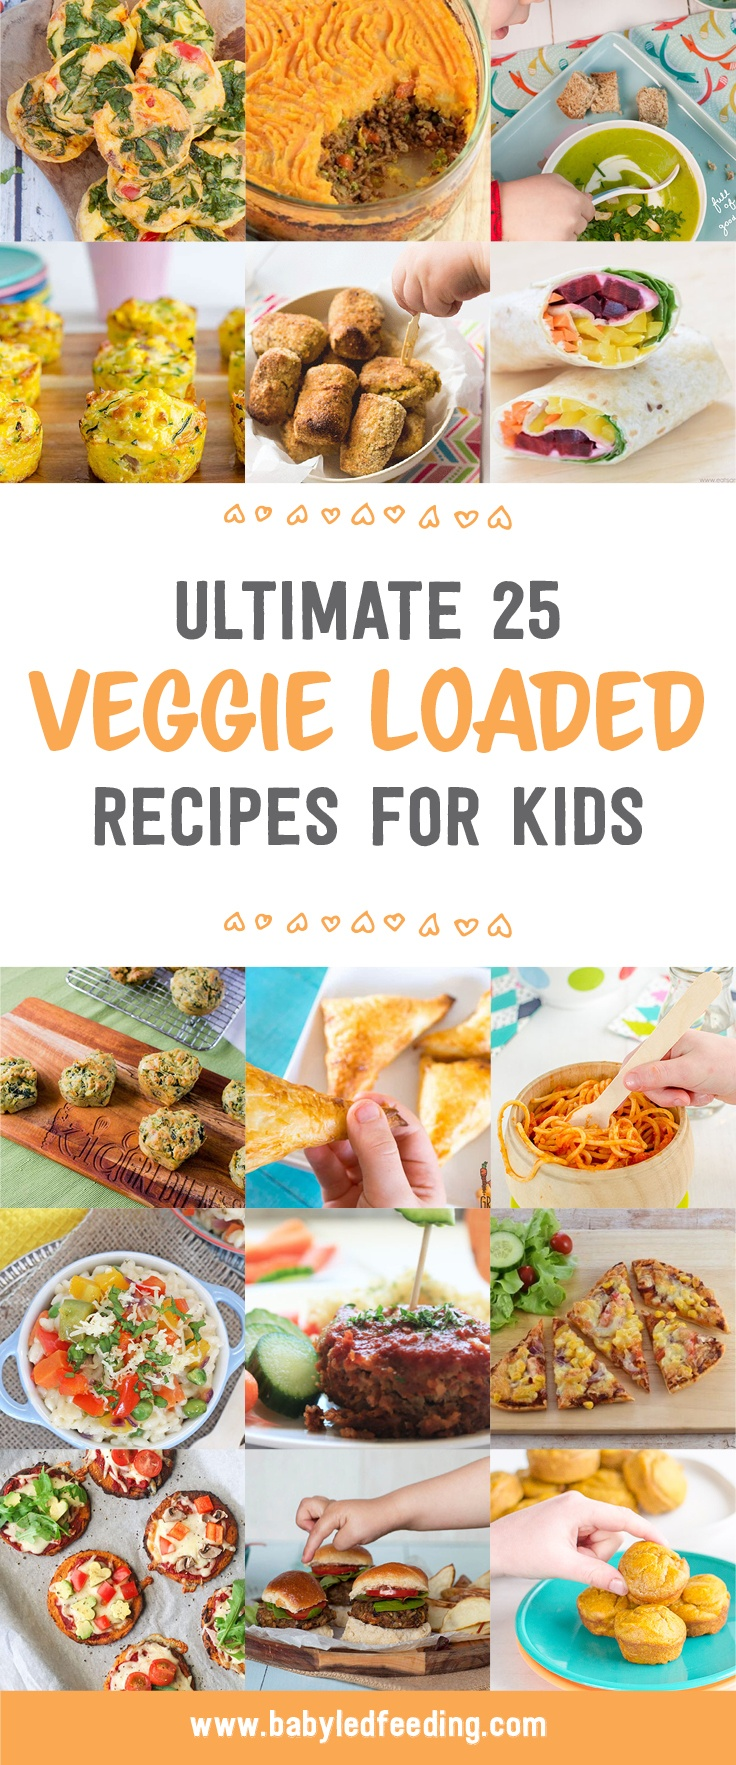 Ultimate list of easy vegetable loaded recipe for picky toddlers and babies. These hidden veggie recipe are kid friendly, low salt, and low butter/ no butter. Add these yummy recipe to your family meal planning! #veggierecipe #pickytoddler #pickyeater #fingerfood #familymeals